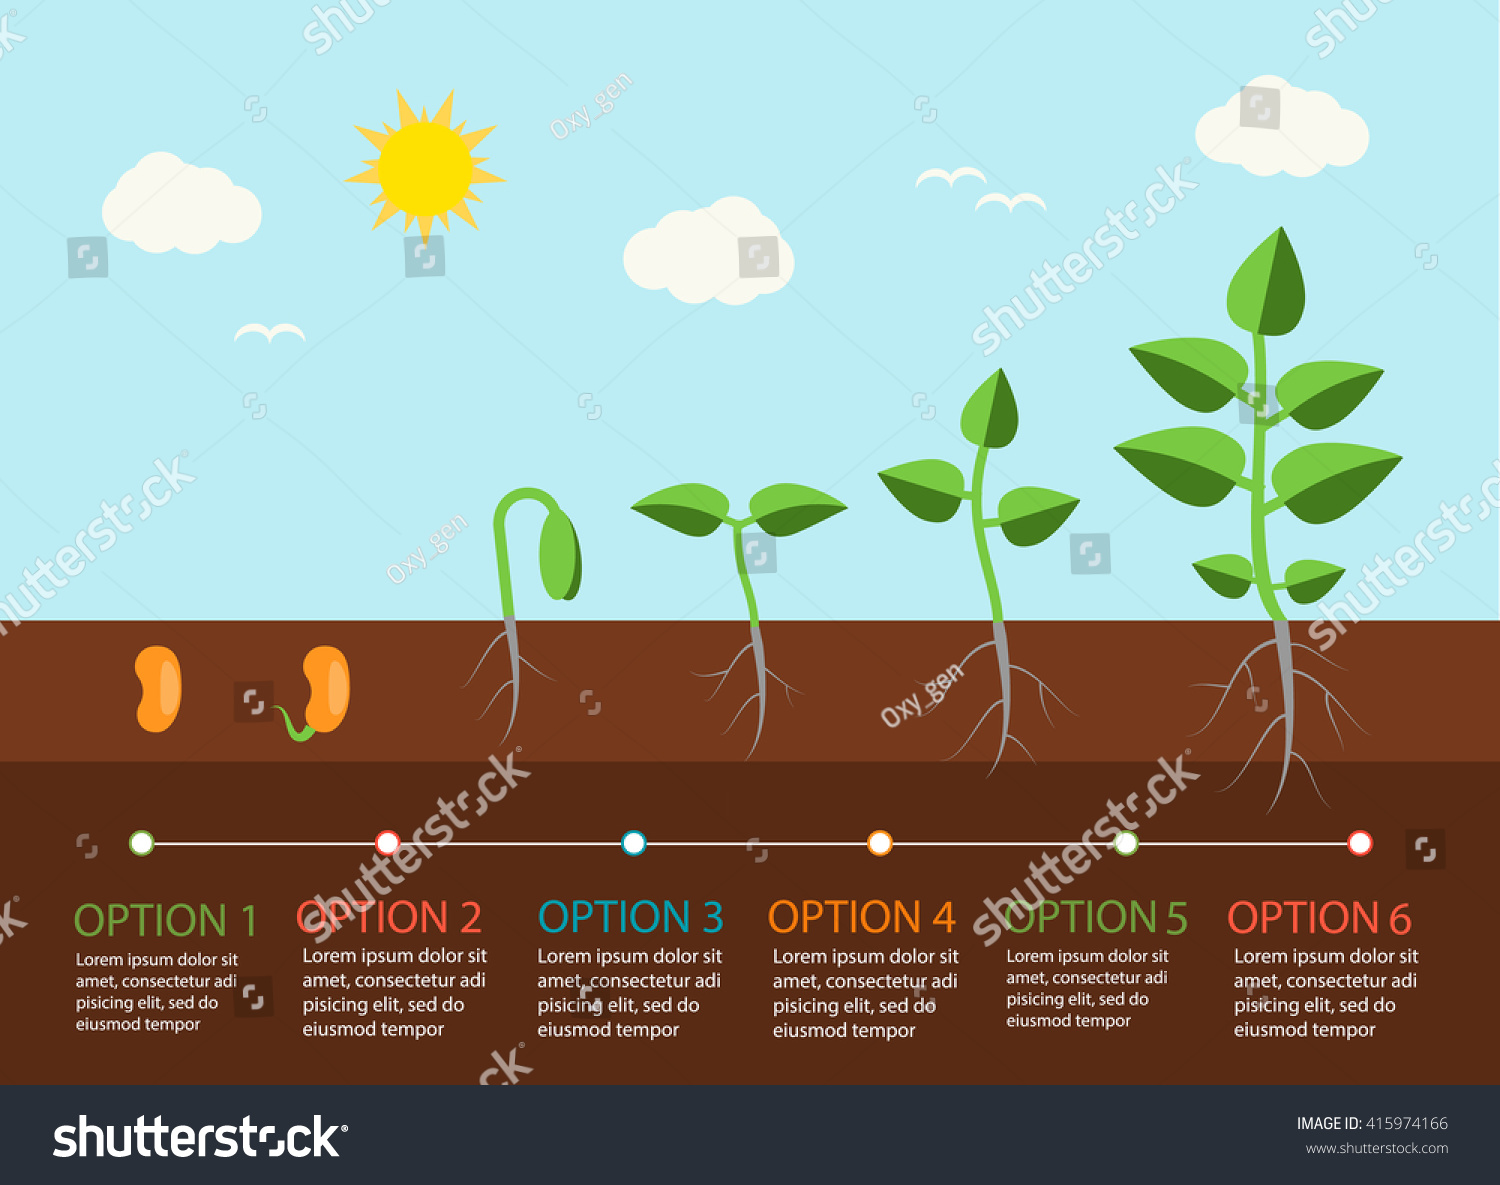 sunflower plant life cycle diagram 1990 jeep wrangler stereo wiring seedlings growing infographics plants grow stages stock